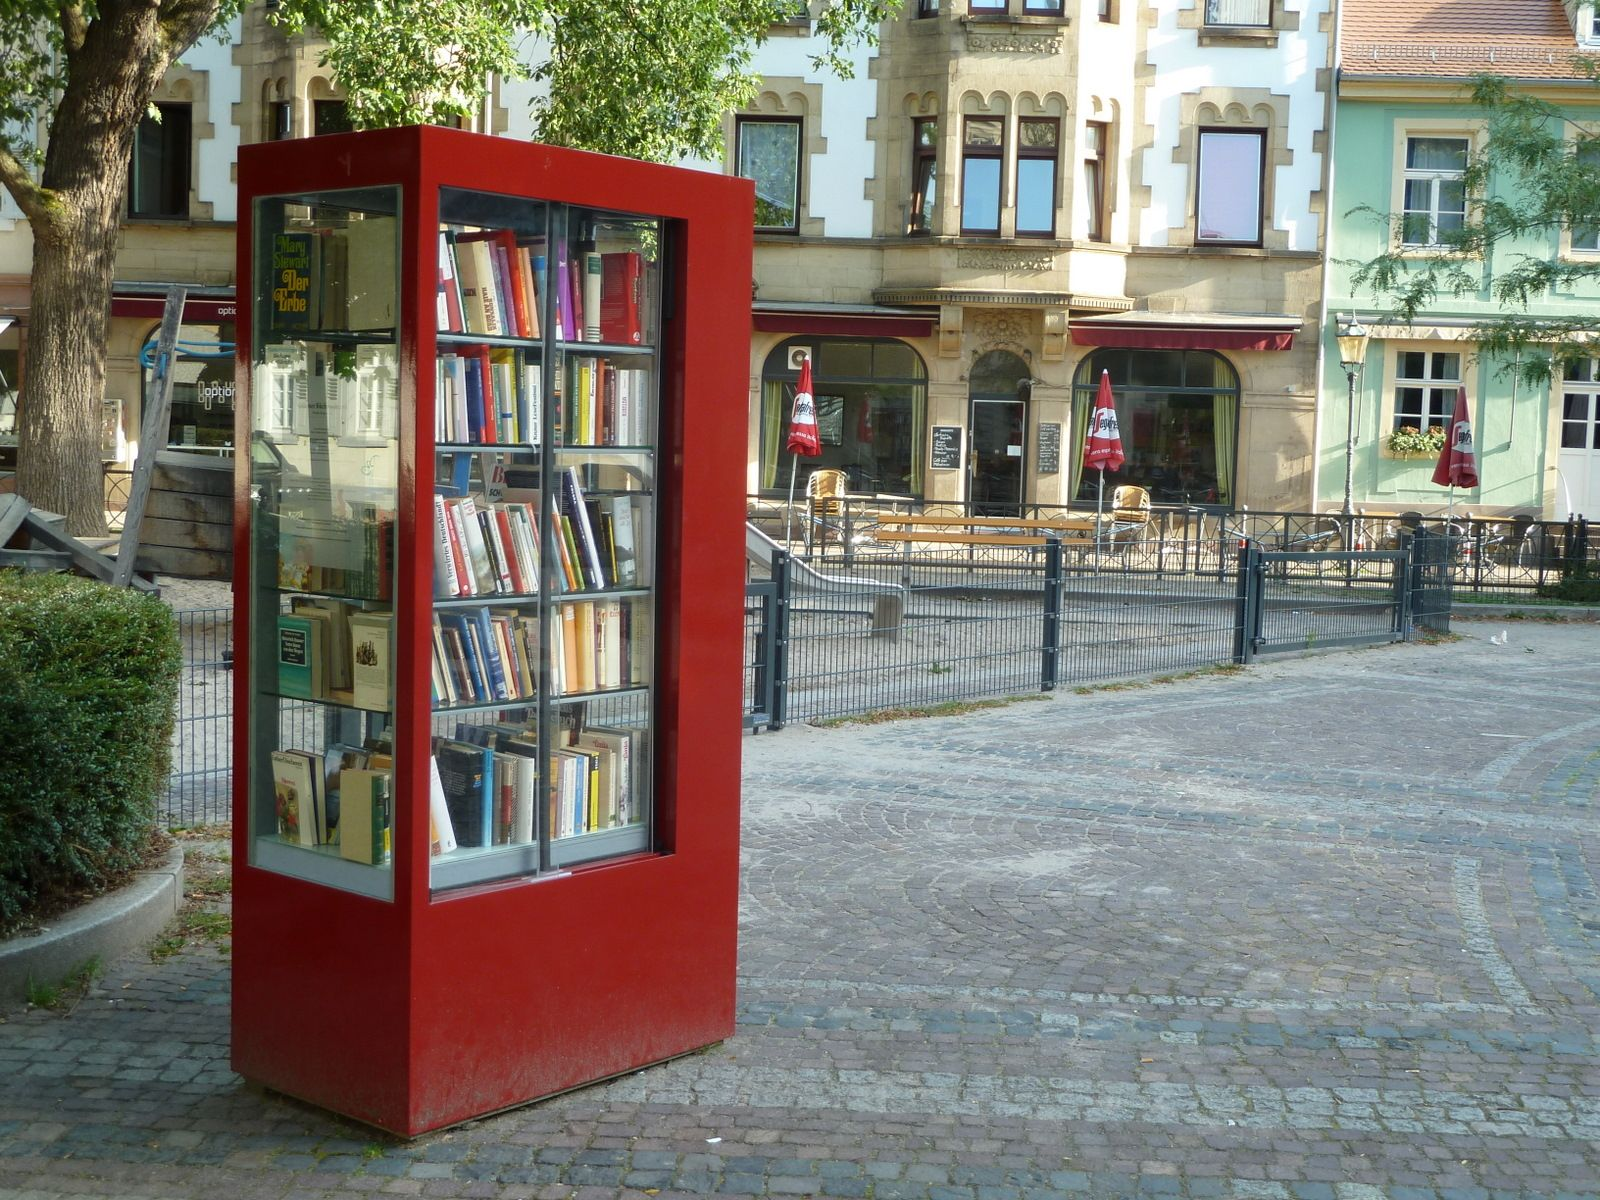 German Public Bookshelf Red Paint Sure Makes It Stand Out